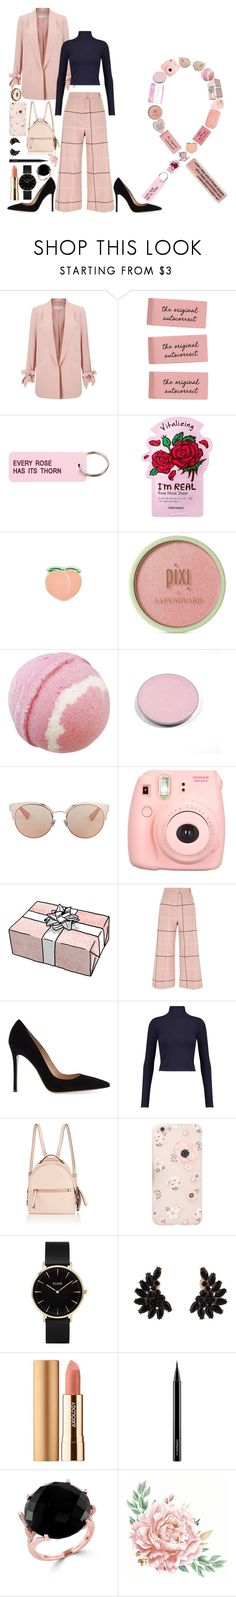 """October: Pink for Breast Cancer💕"" by andreab6 ❤ liked on Polyvore featuring Miss Selfridge, Various Projects, TONYMOLY, PINTRILL, Pixi, CASSETTE, Chantecaille, Christian Dior, Polaroid and River Island"